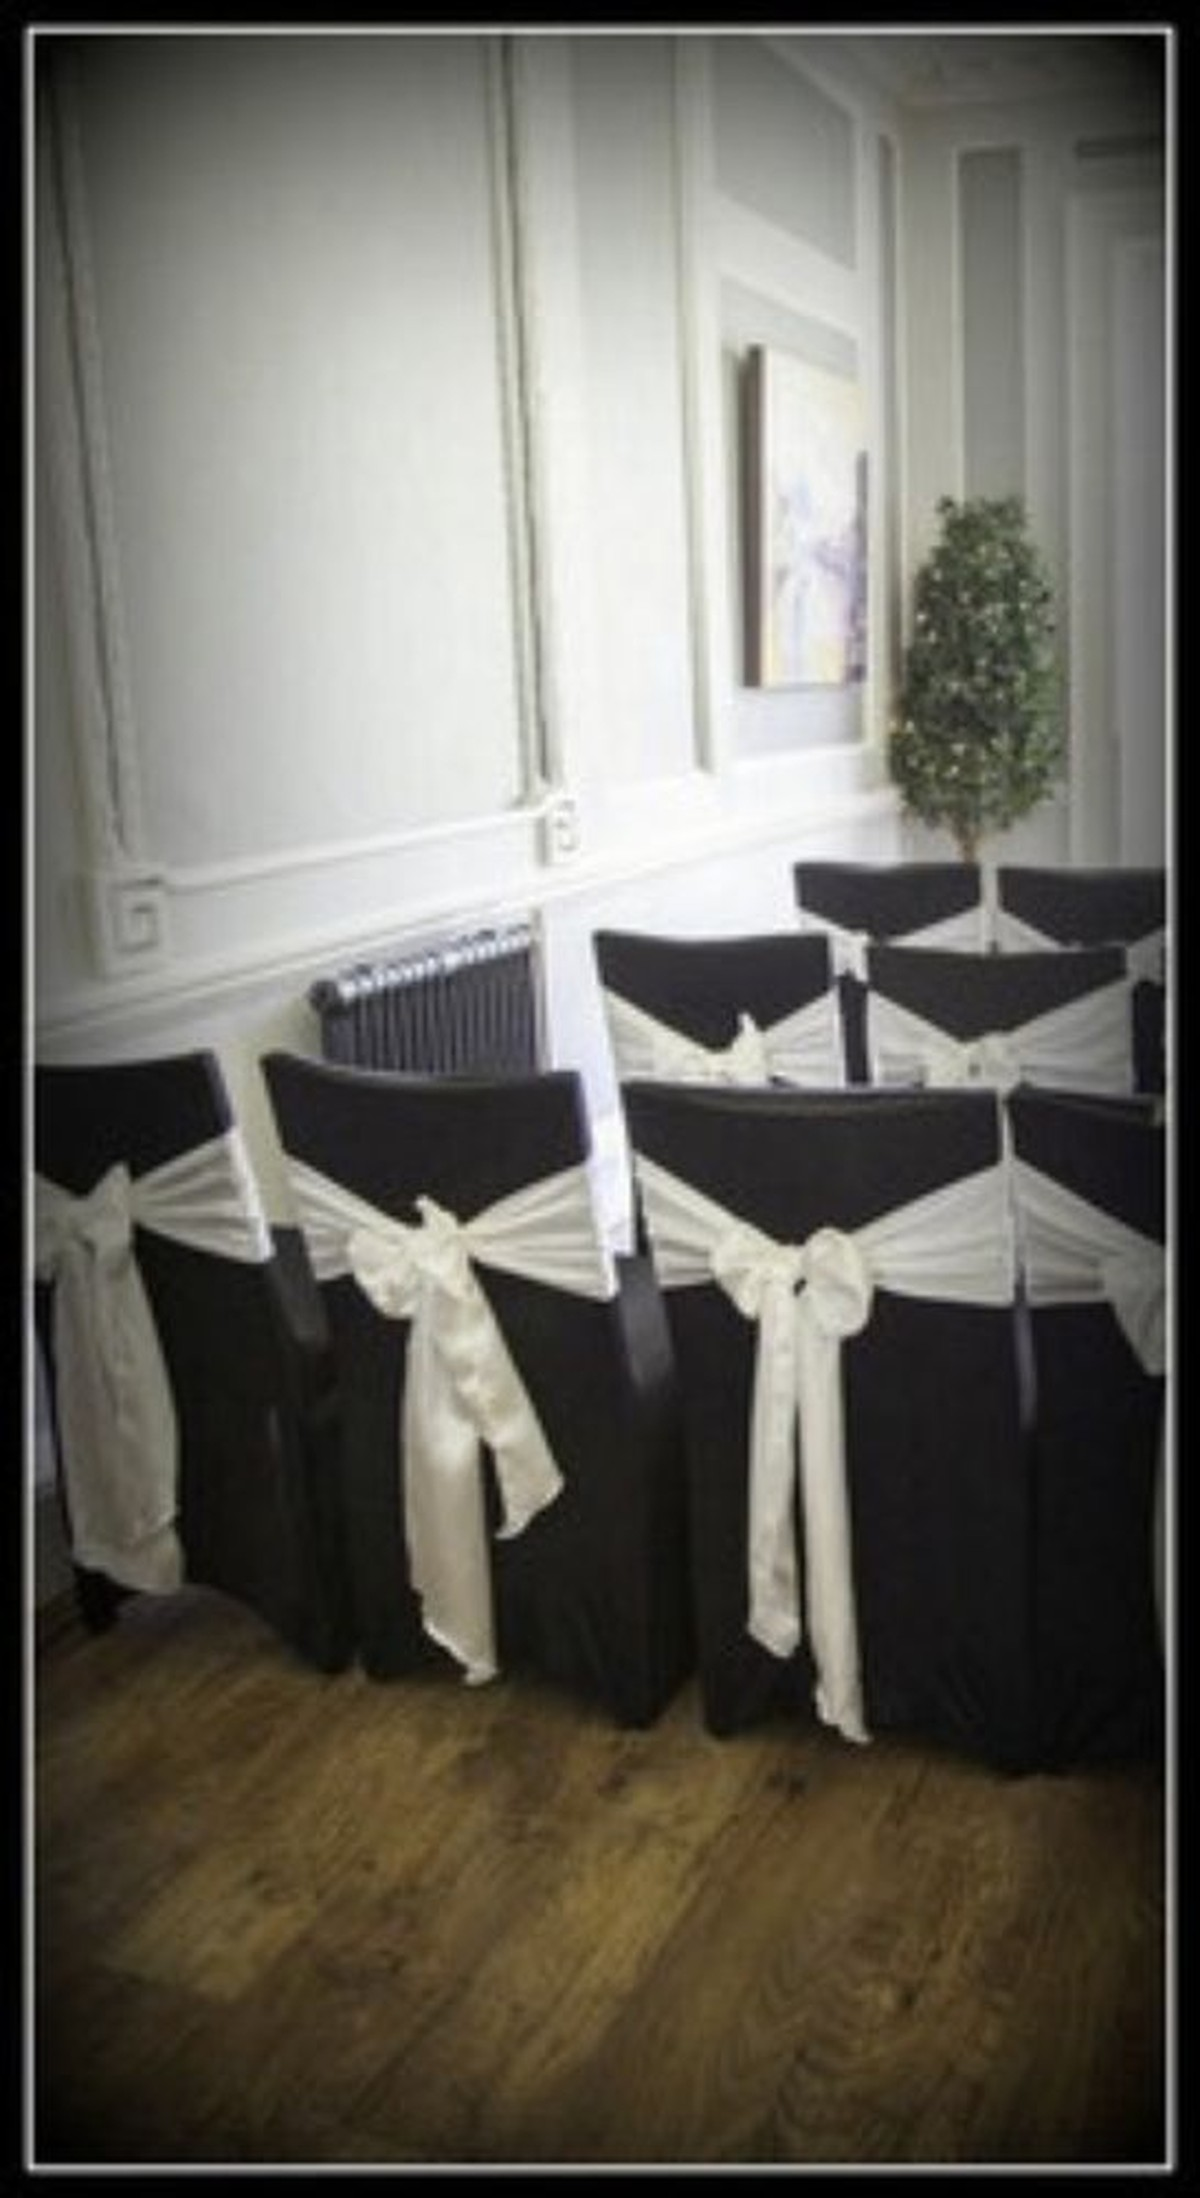 used chair covers wedding for sale bows secondhand catering equipment table linen and decor